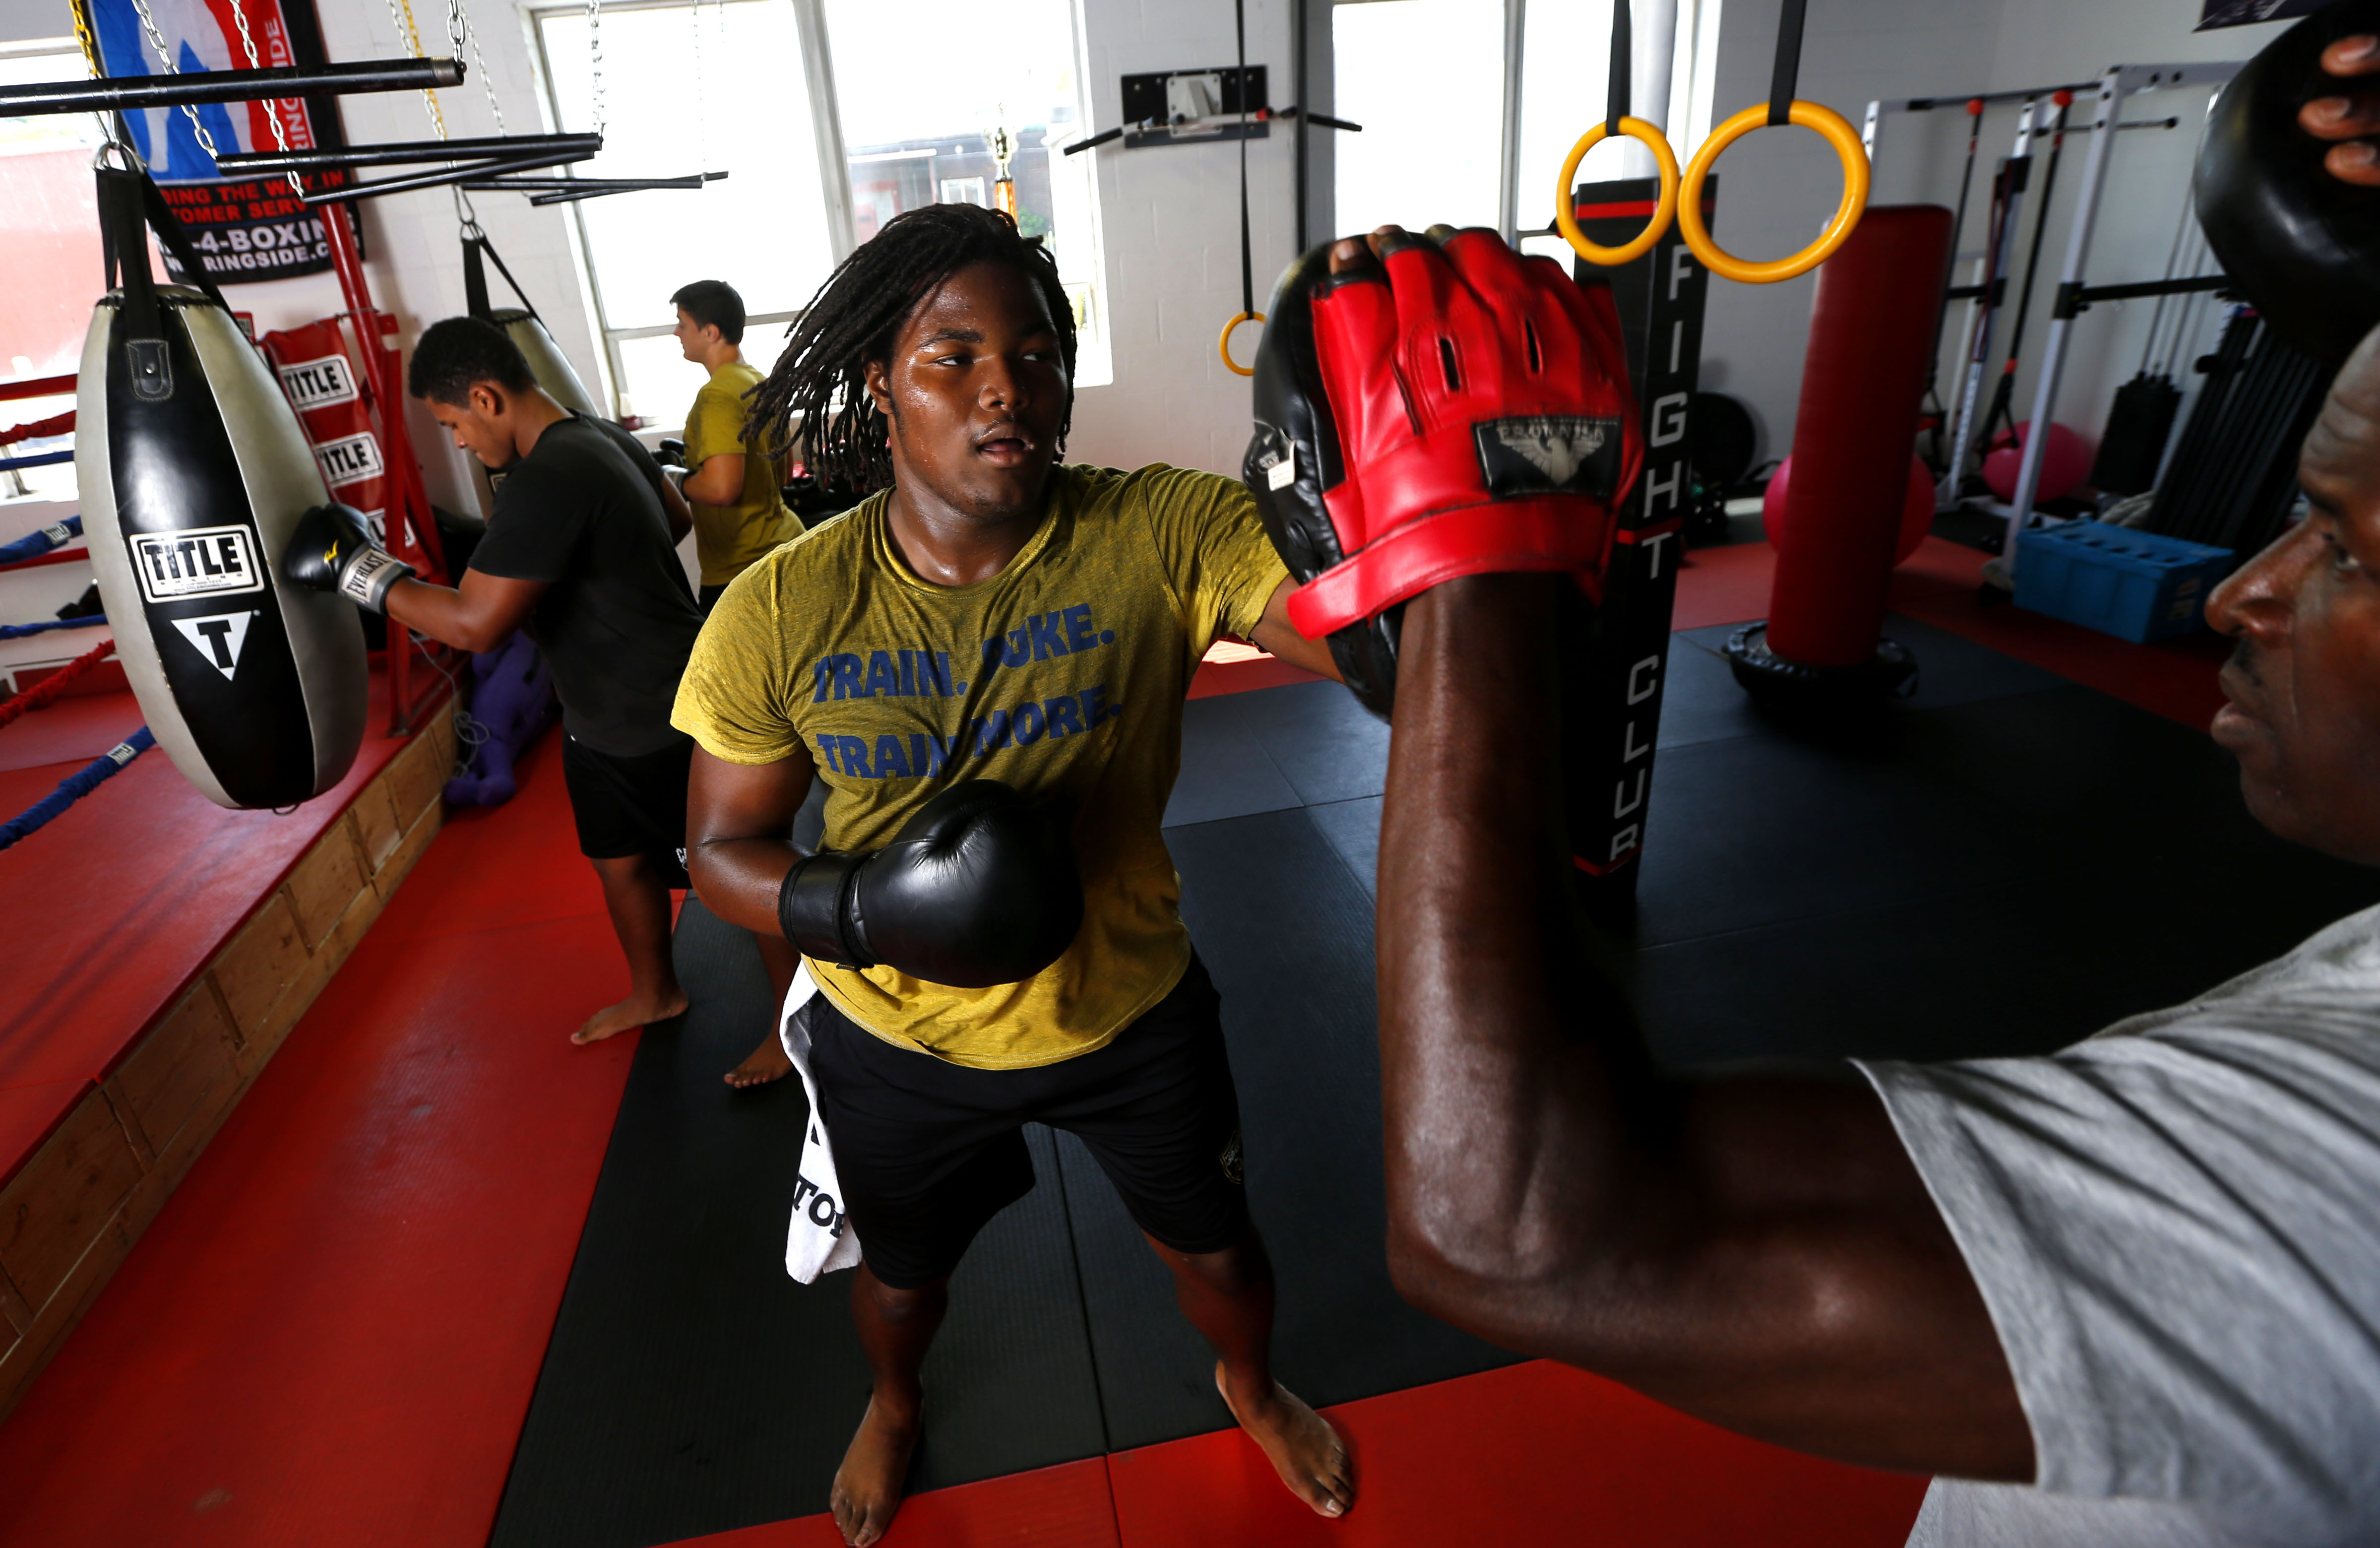 Boxing is part of the strength routine for No. 1 recruit,defensive end Rashan Gary of Paramus Catholic (Photo: Noah K. Murray, USA TODAY Sports)